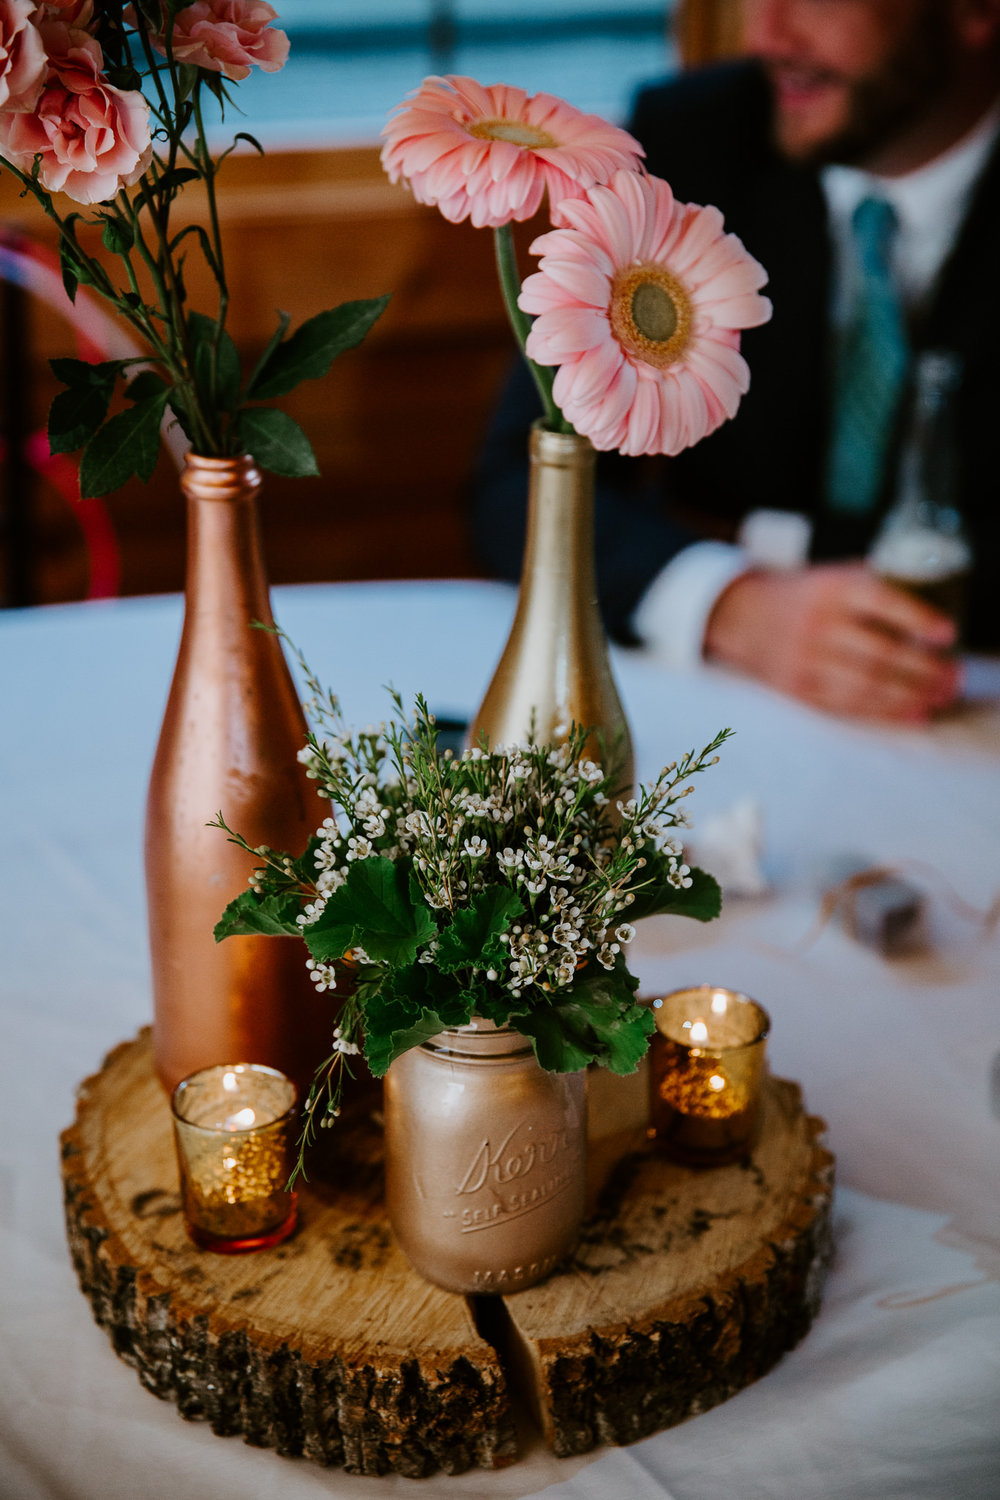 House Mountain Inn - Weddings - Lexington - Virginia - Best Wedding Photographer - Pat Cori Photography-65.jpg